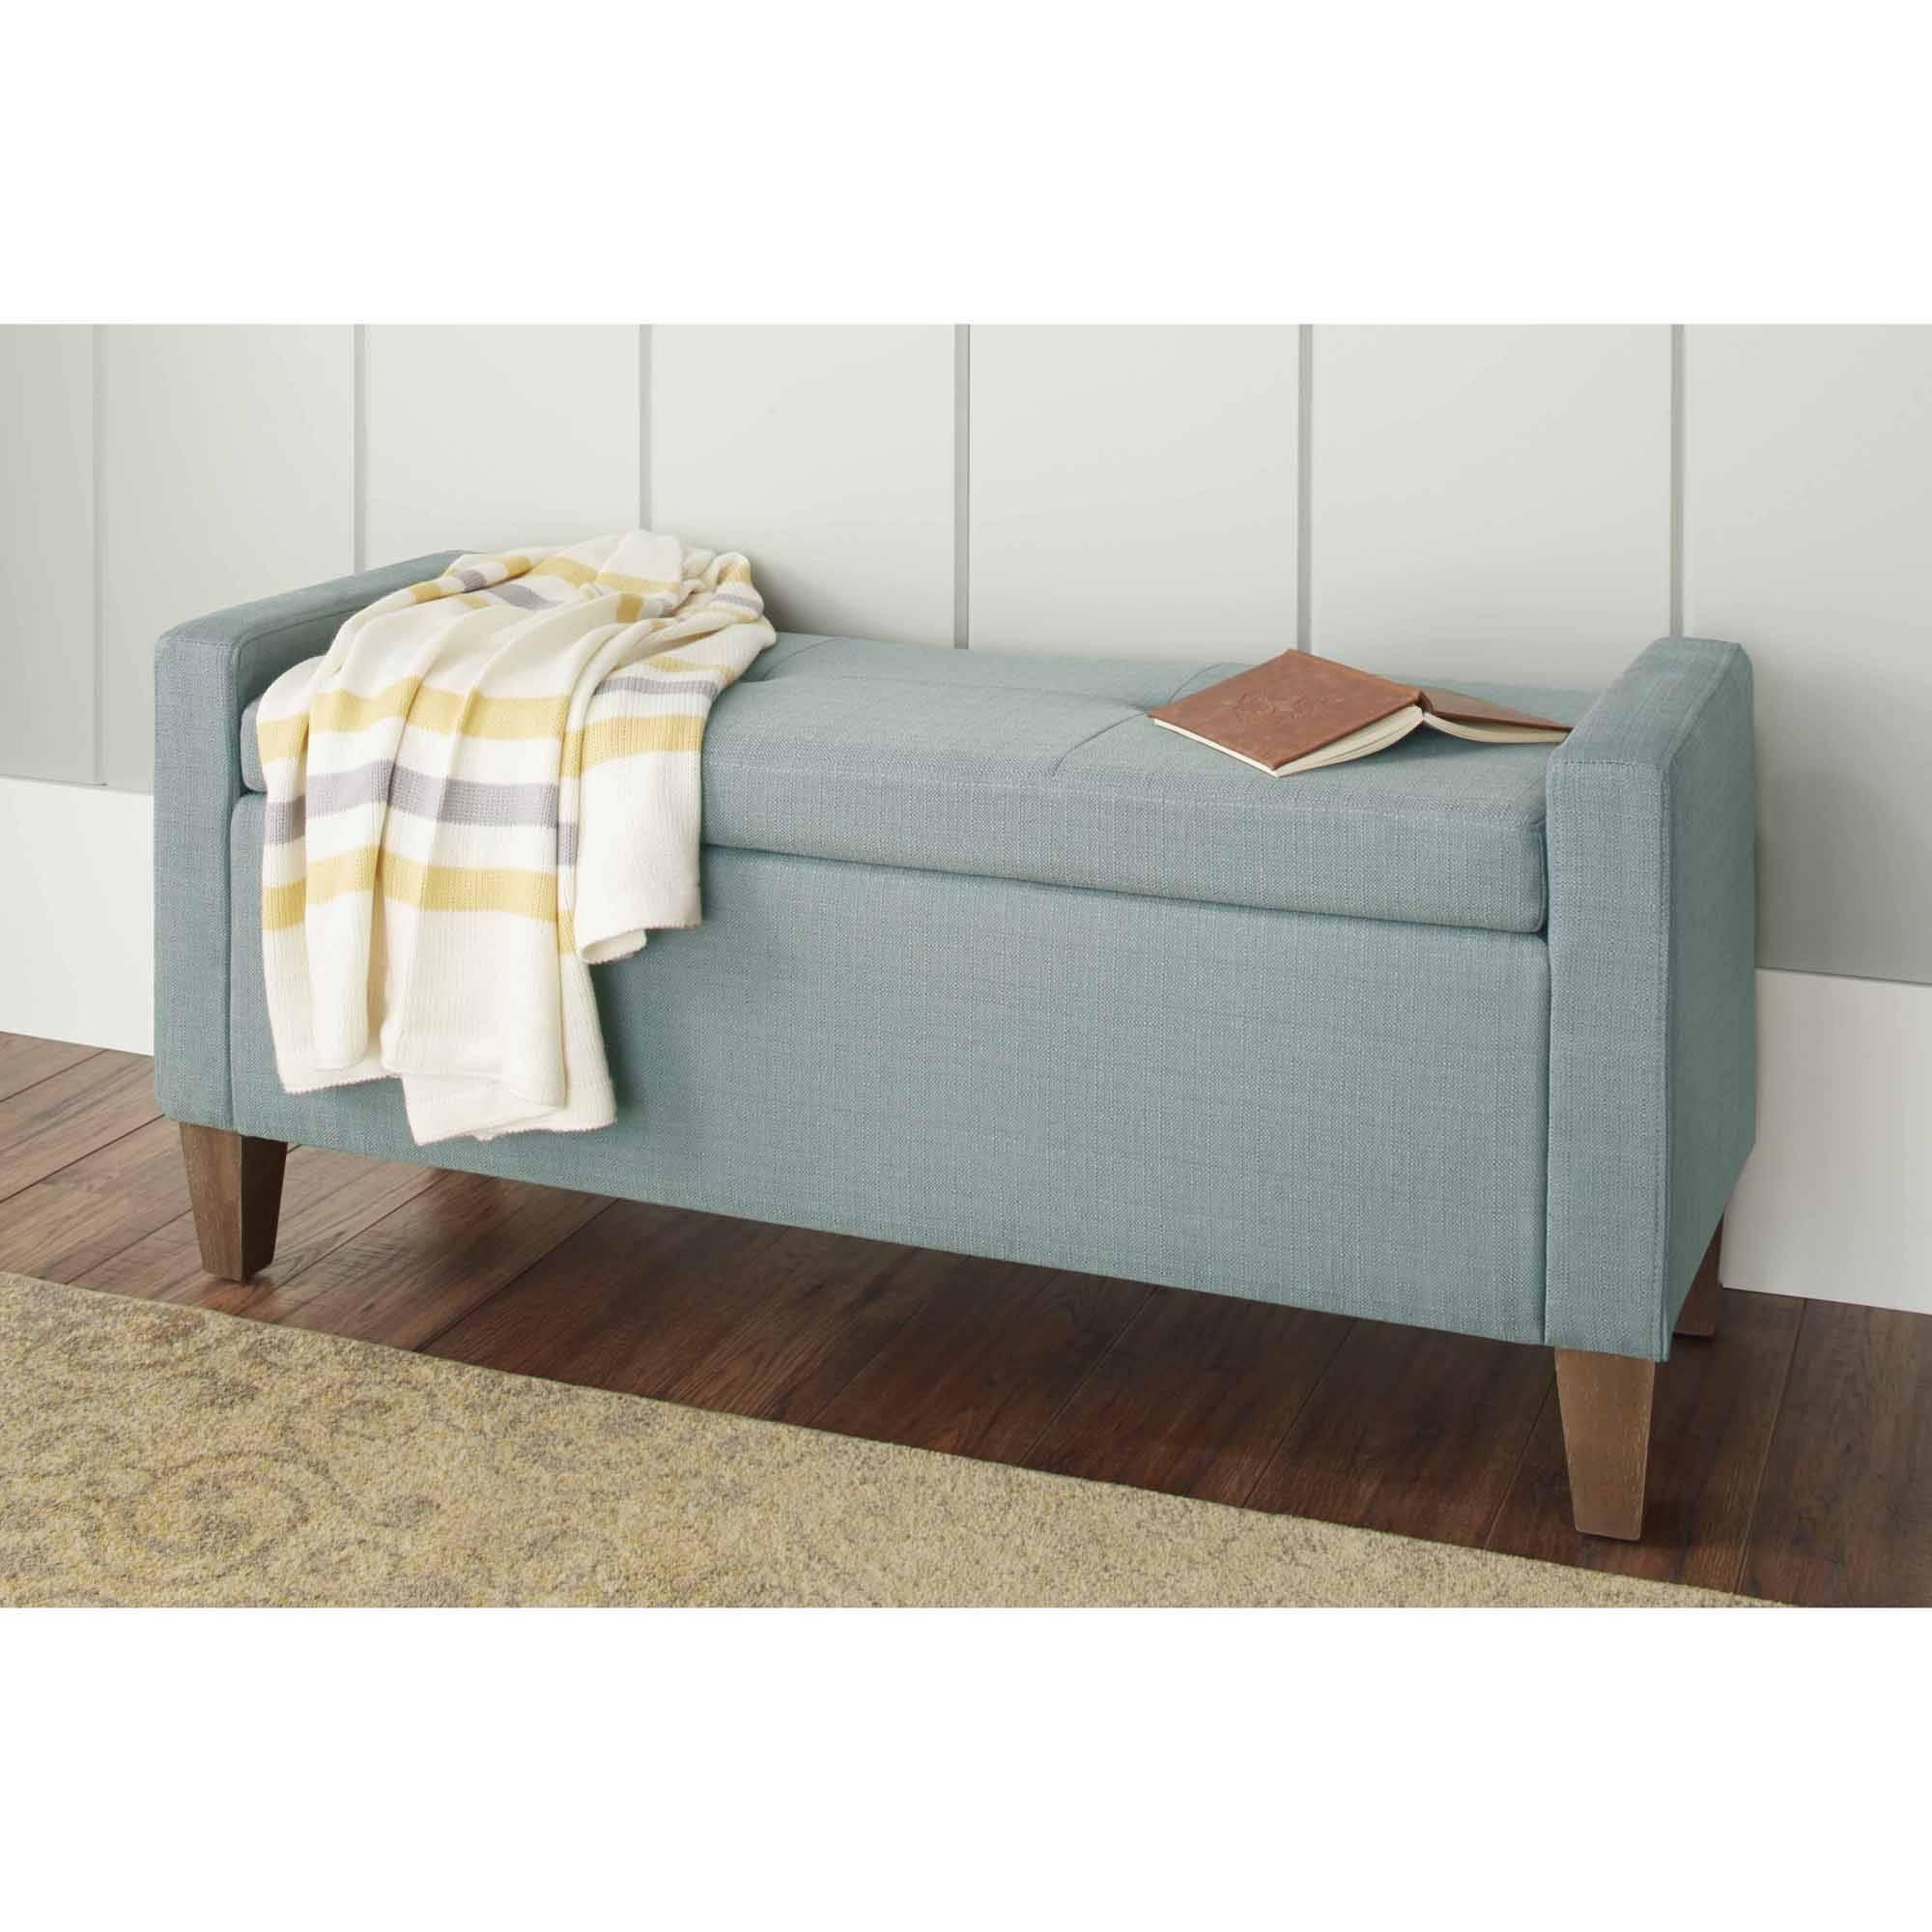 Extra Long Storage Bench Cozy End Of Bed Benches For Inspiring Bedroom Furniture Ideas Extra